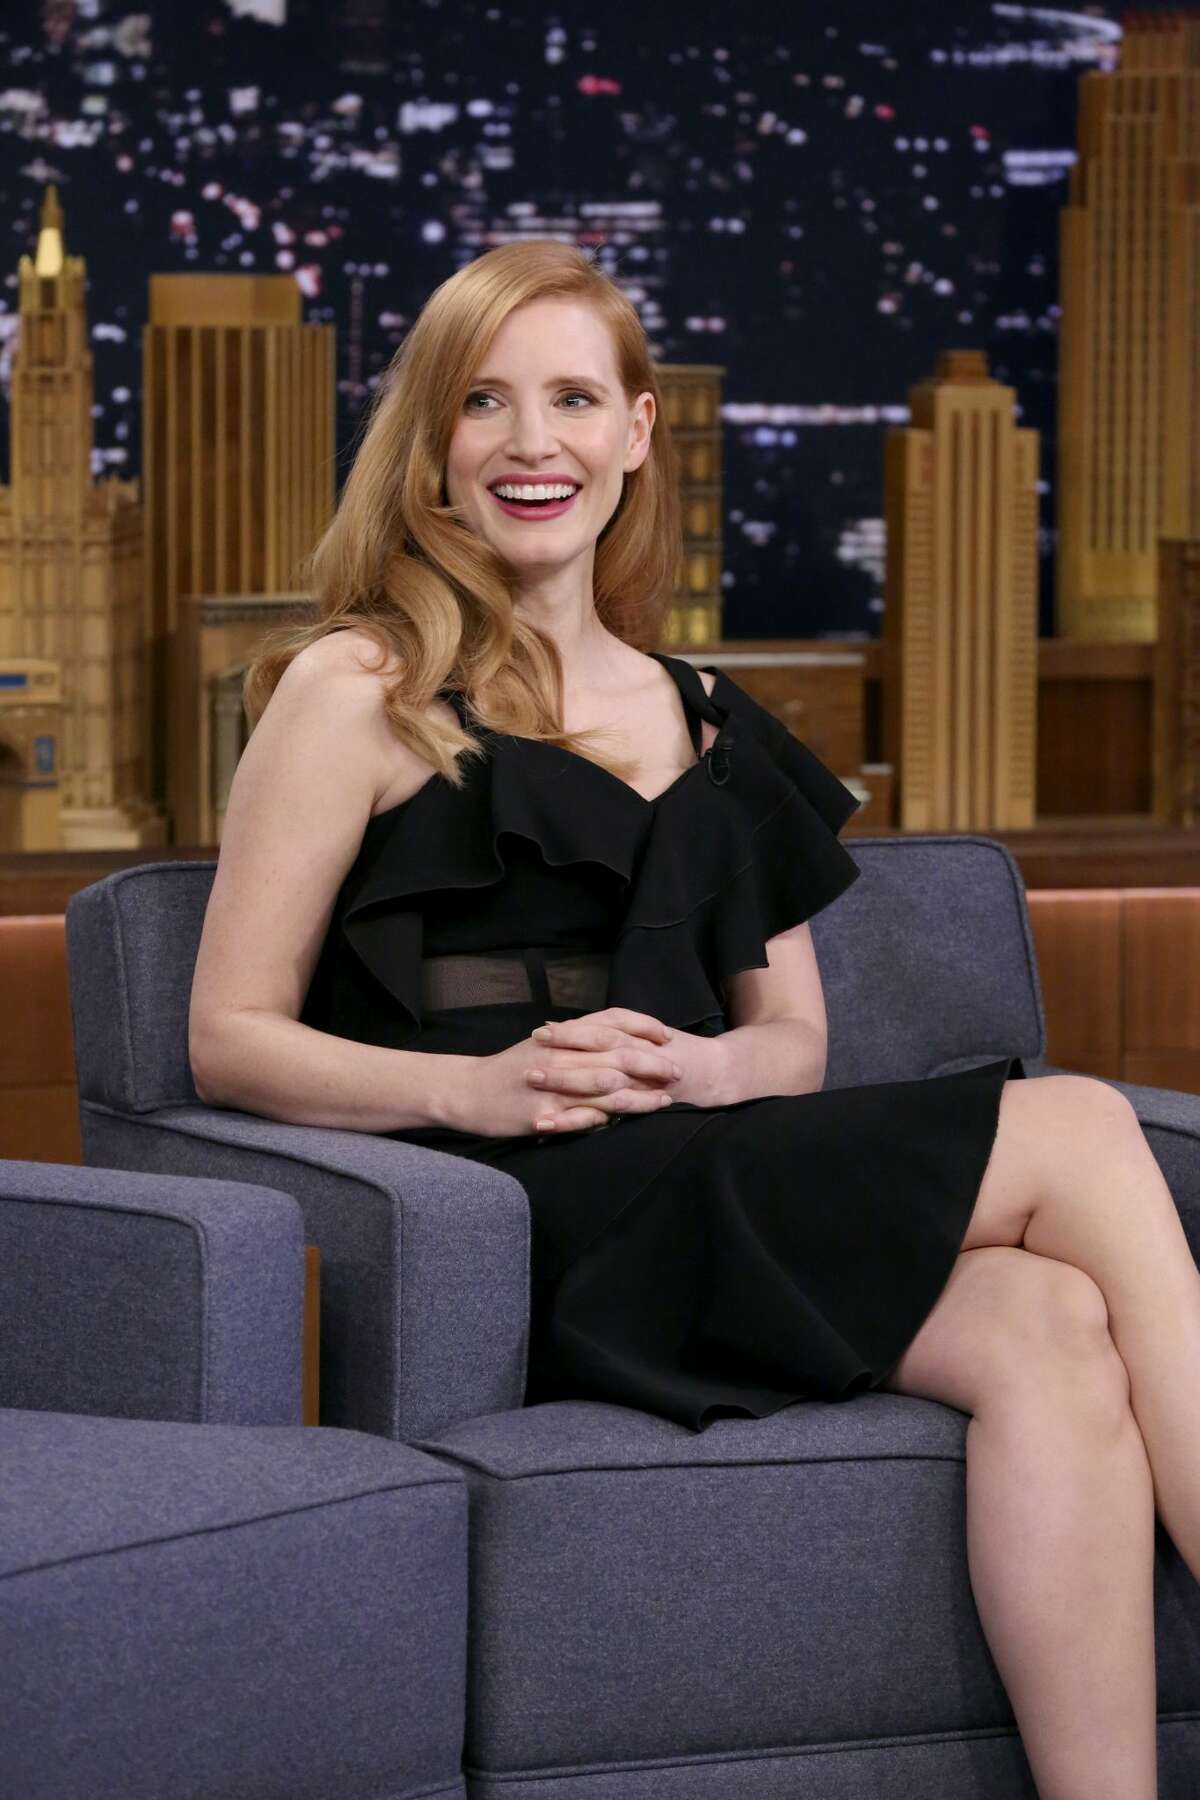 THE TONIGHT SHOW STARRING JIMMY FALLON -- Episode 0805 -- Pictured: Actress Jessica Chastain during an interview on January 18, 2018 -- (Photo by: Andrew Lipovsky/NBC/NBCU Photo Bank via Getty Images)